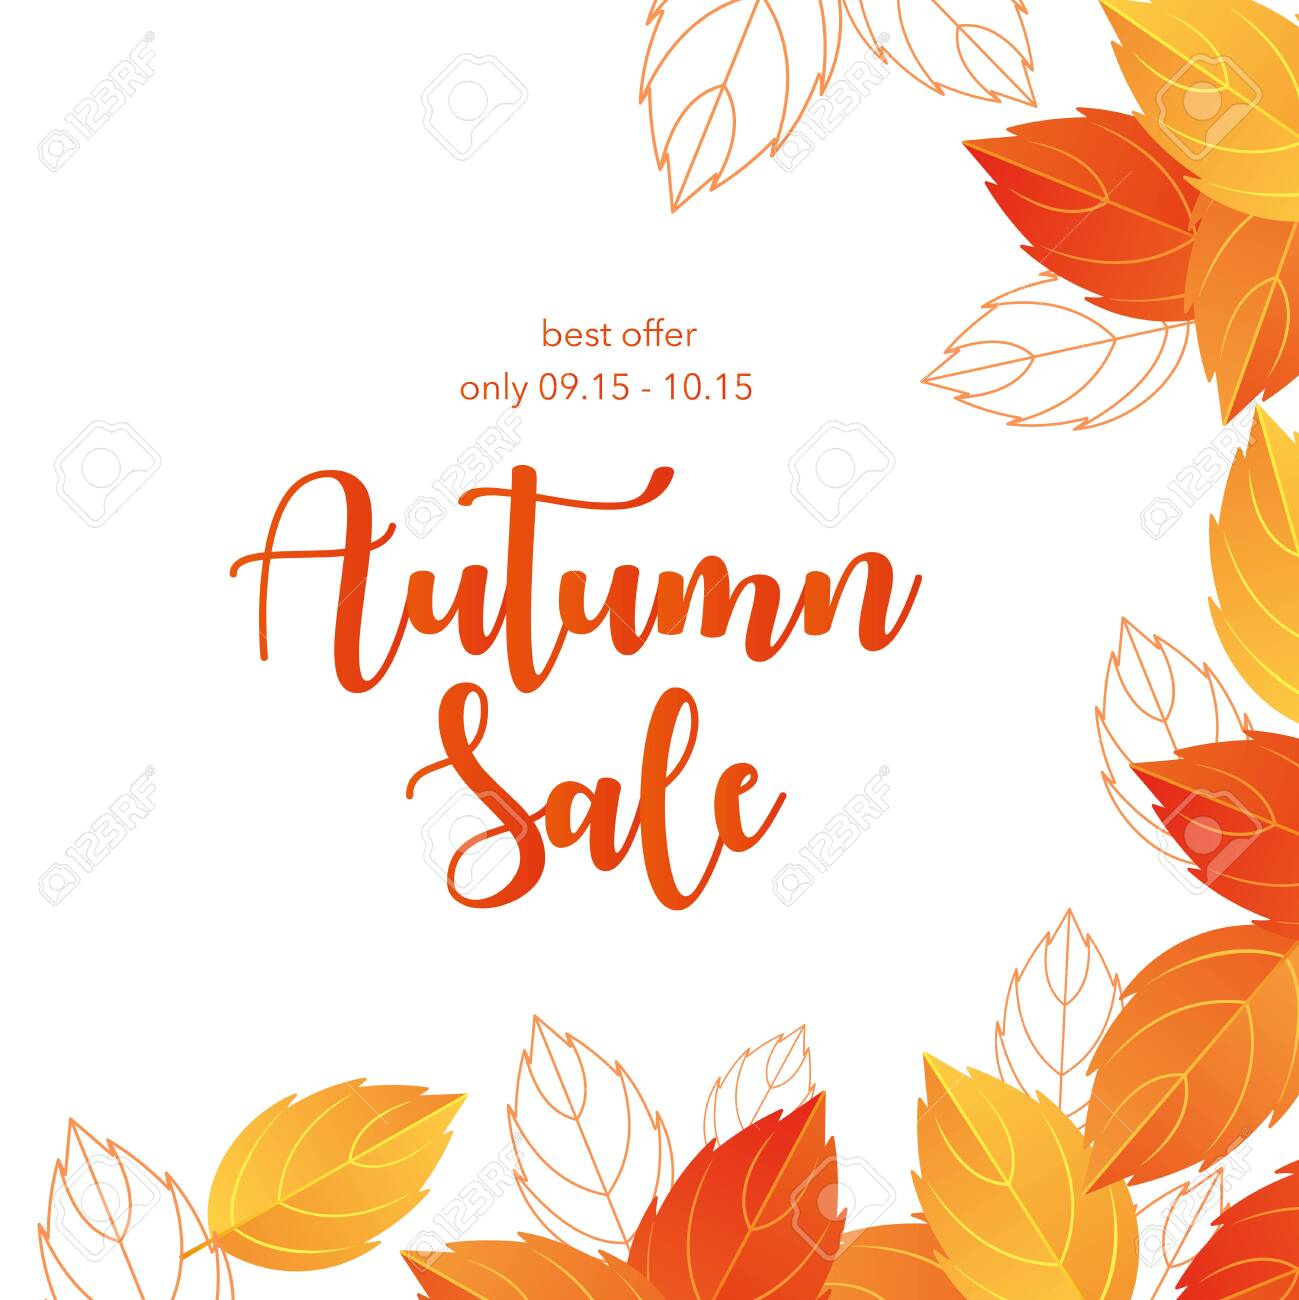 Autumn sale lettering vector illustration. Cartoon flat autumnal yellow orange dry tree leaves frame promo poster with special offer, shopping discount promotion template, fall season background - 148957200